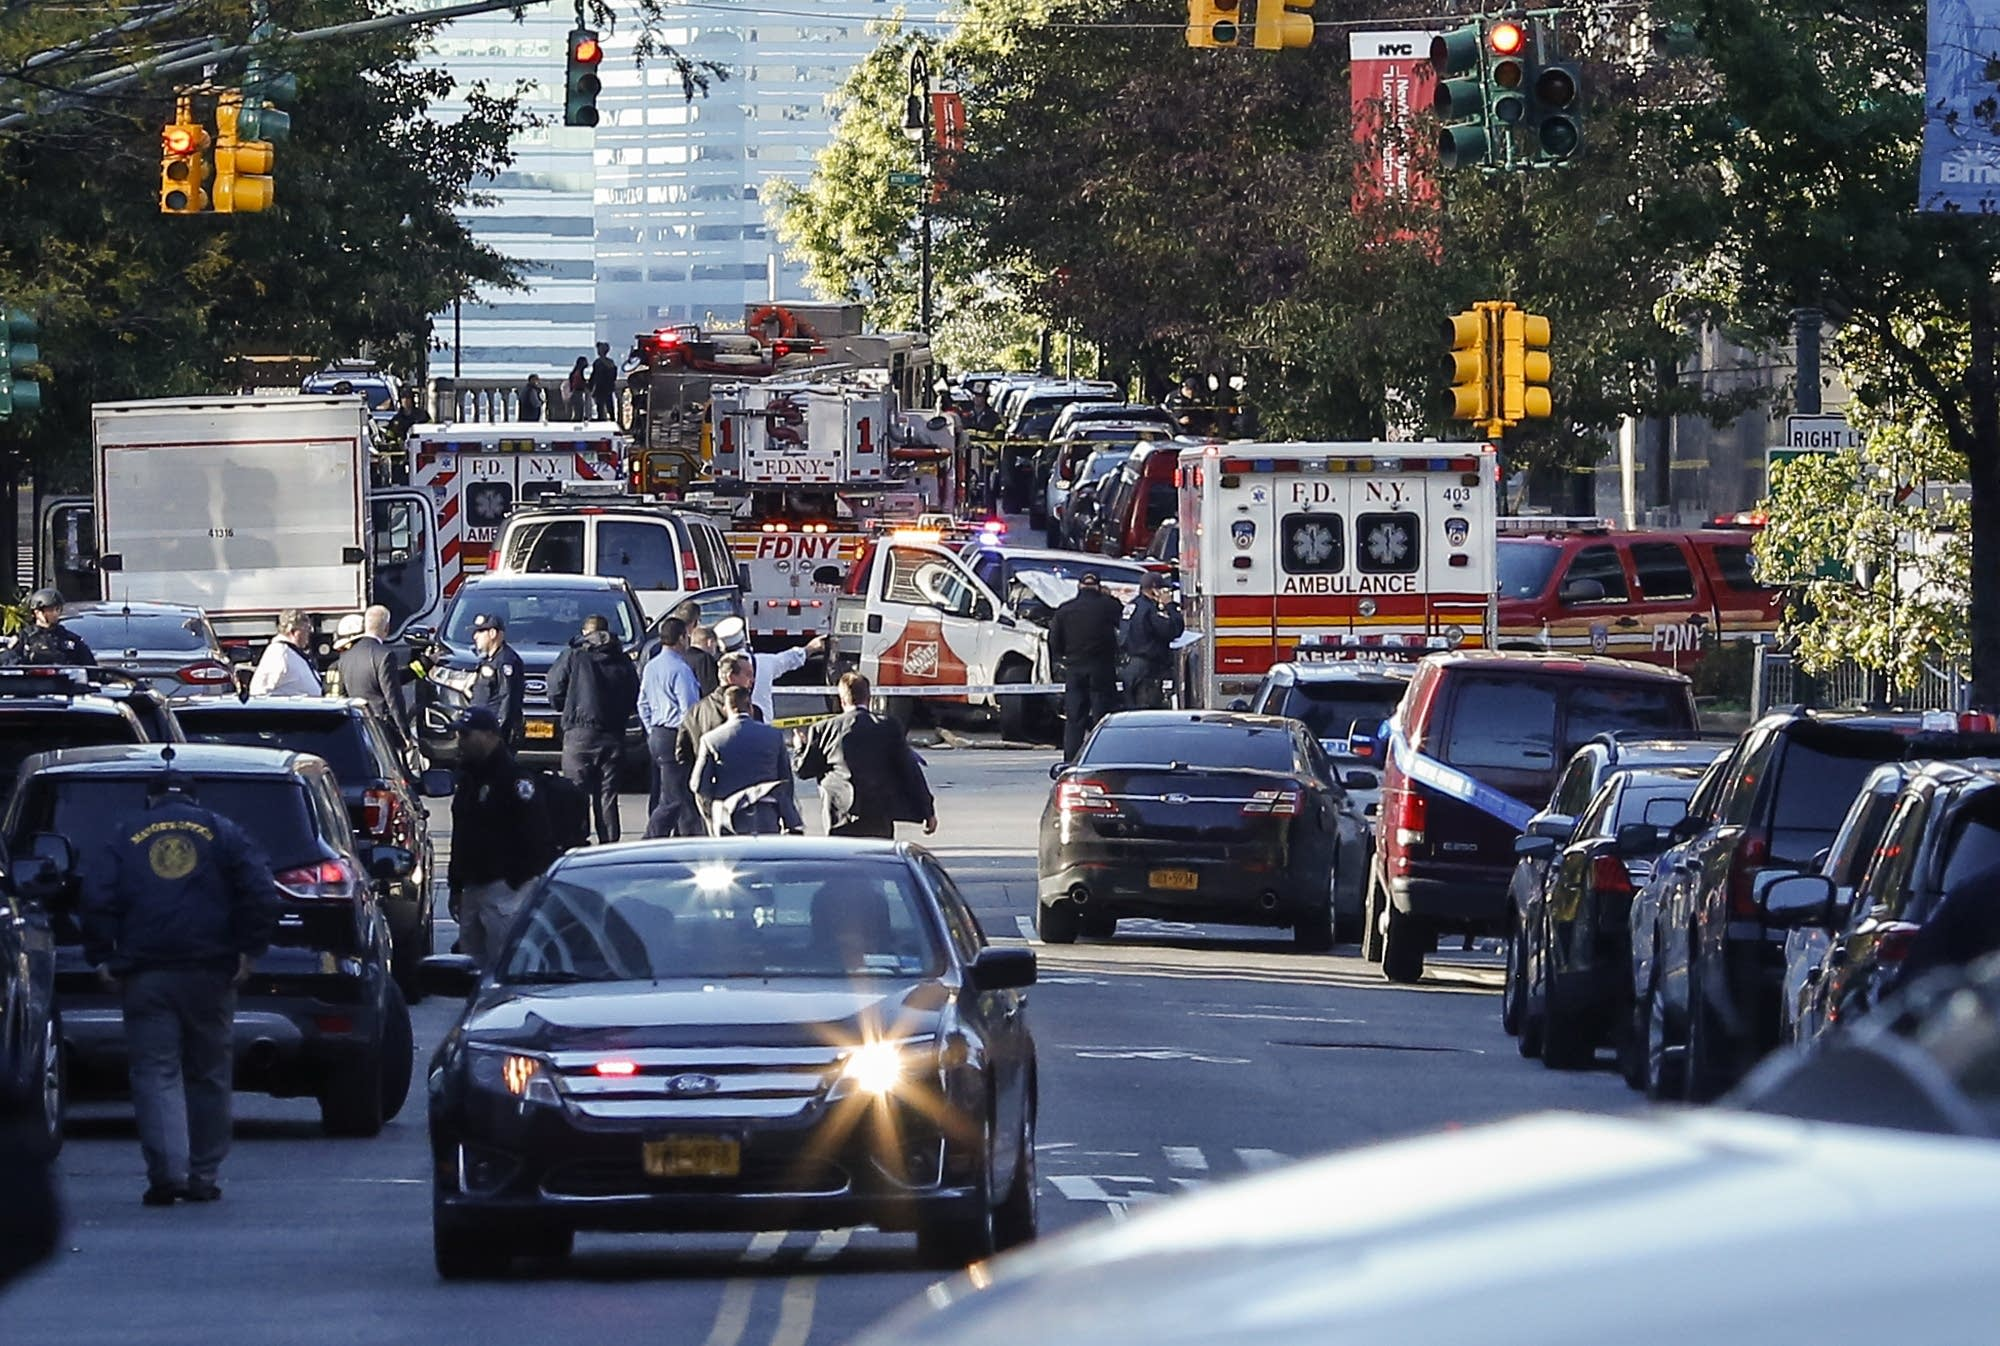 Emergency personal respond after a truck attack in New York